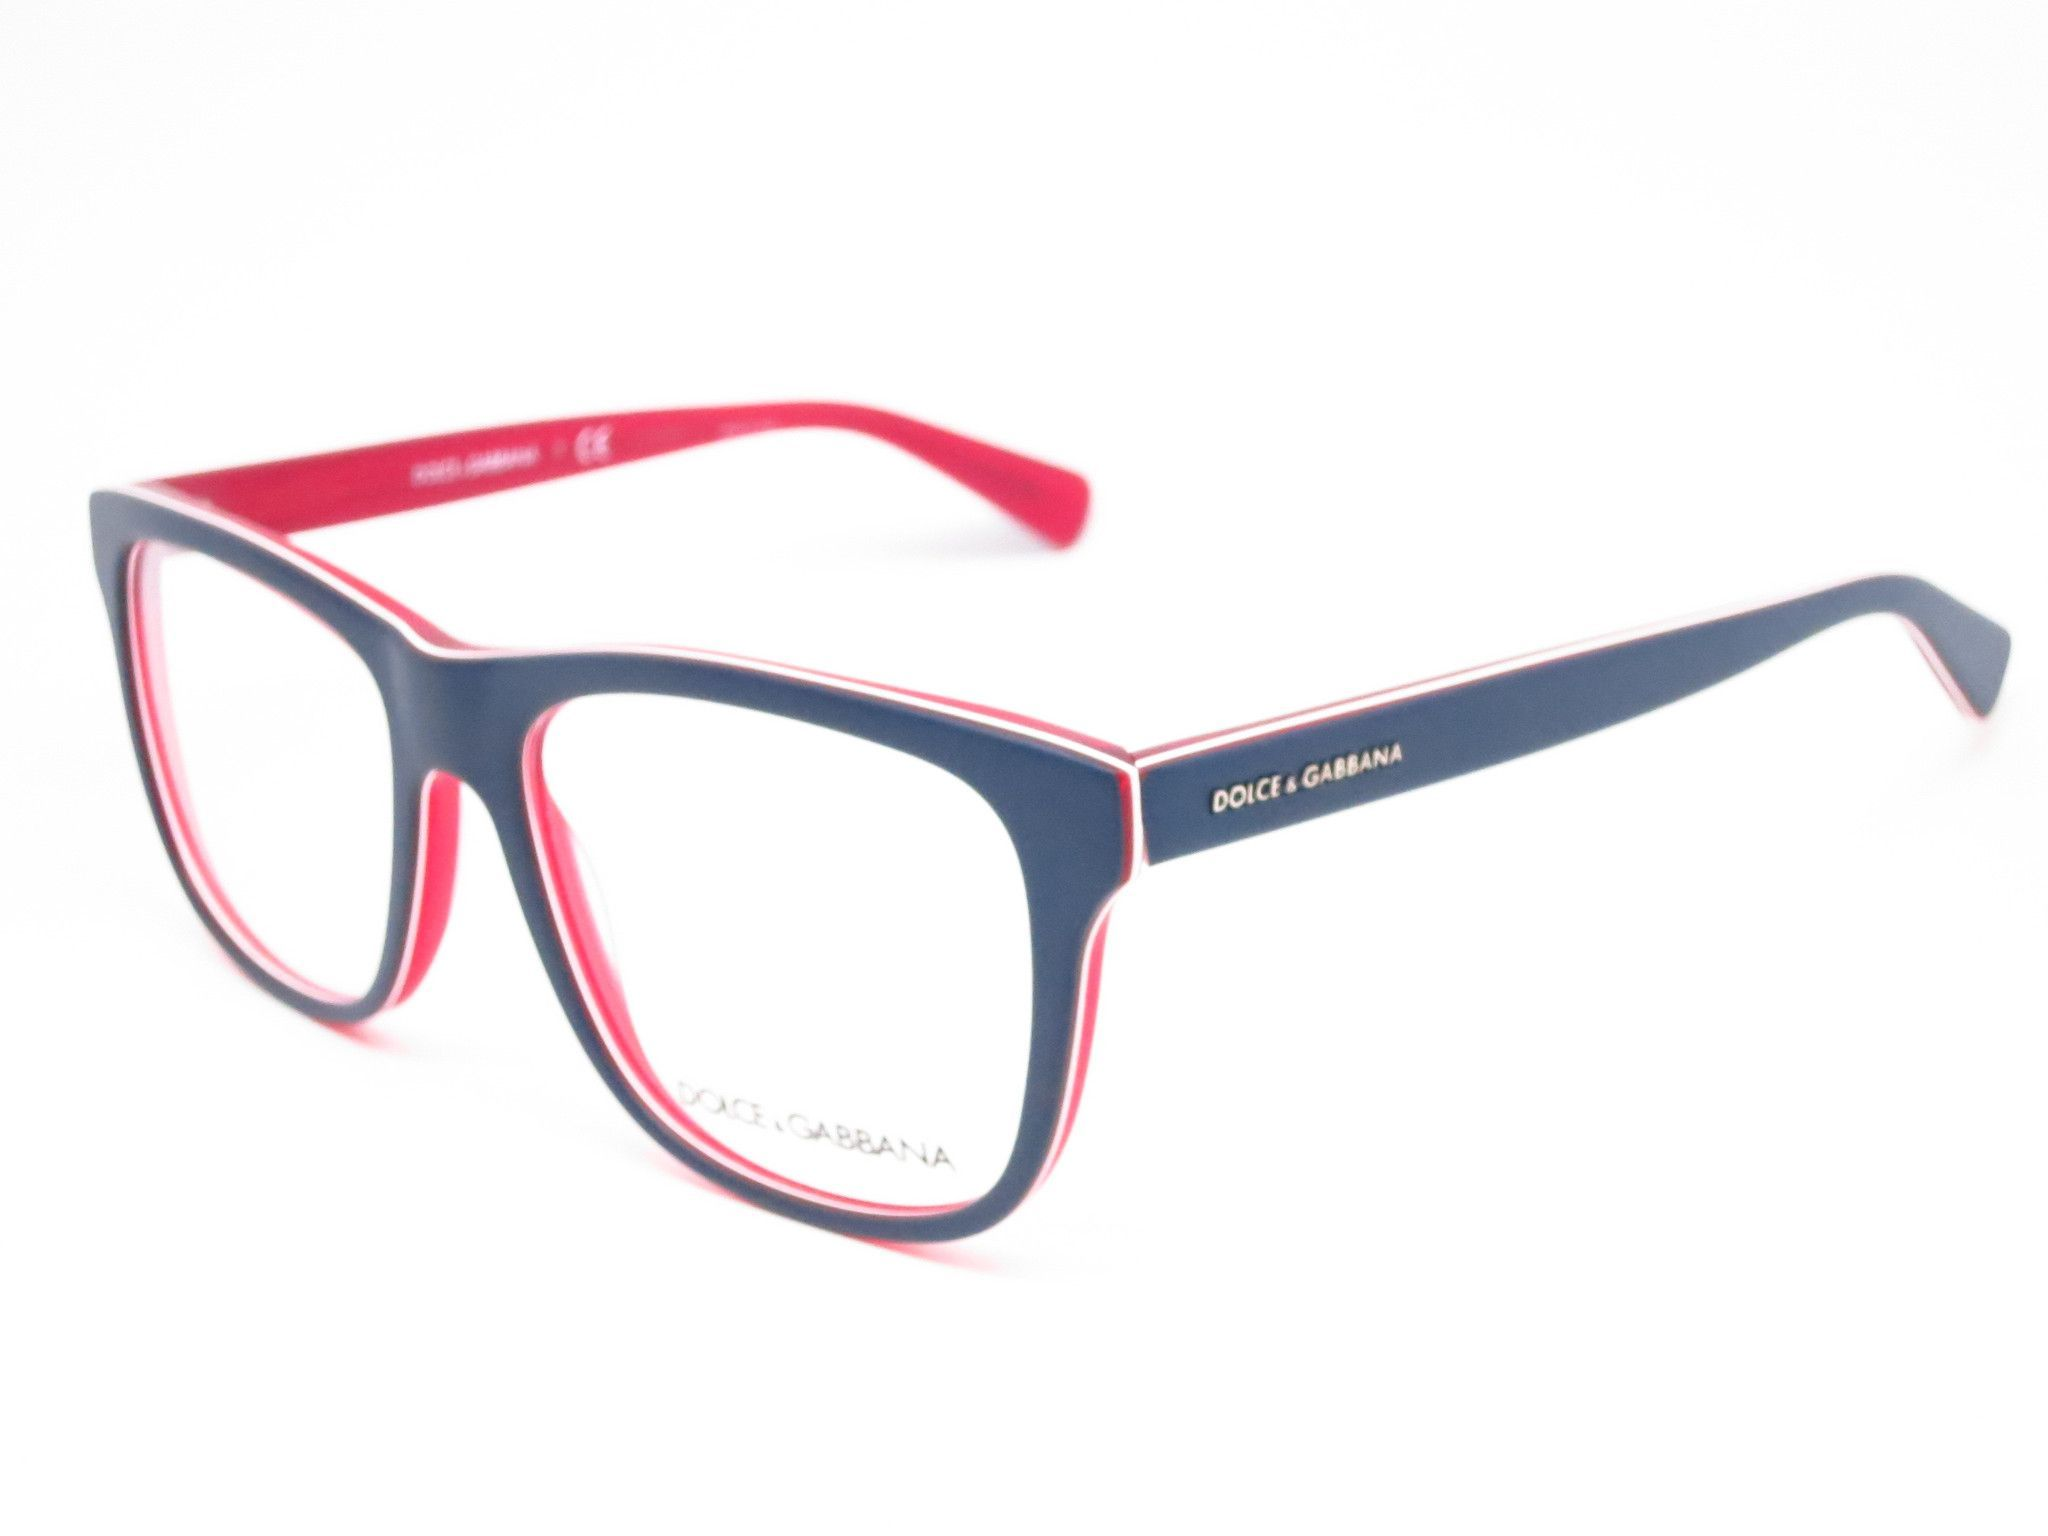 b09ca9b0679 Dolce   Gabbana DG 3206 Product Details Brand Name   Dolce   Gabbana Model  Number   DG 3206 - Color Code   1872 Frame Color   Top Blue on Matte Red  Lens ...